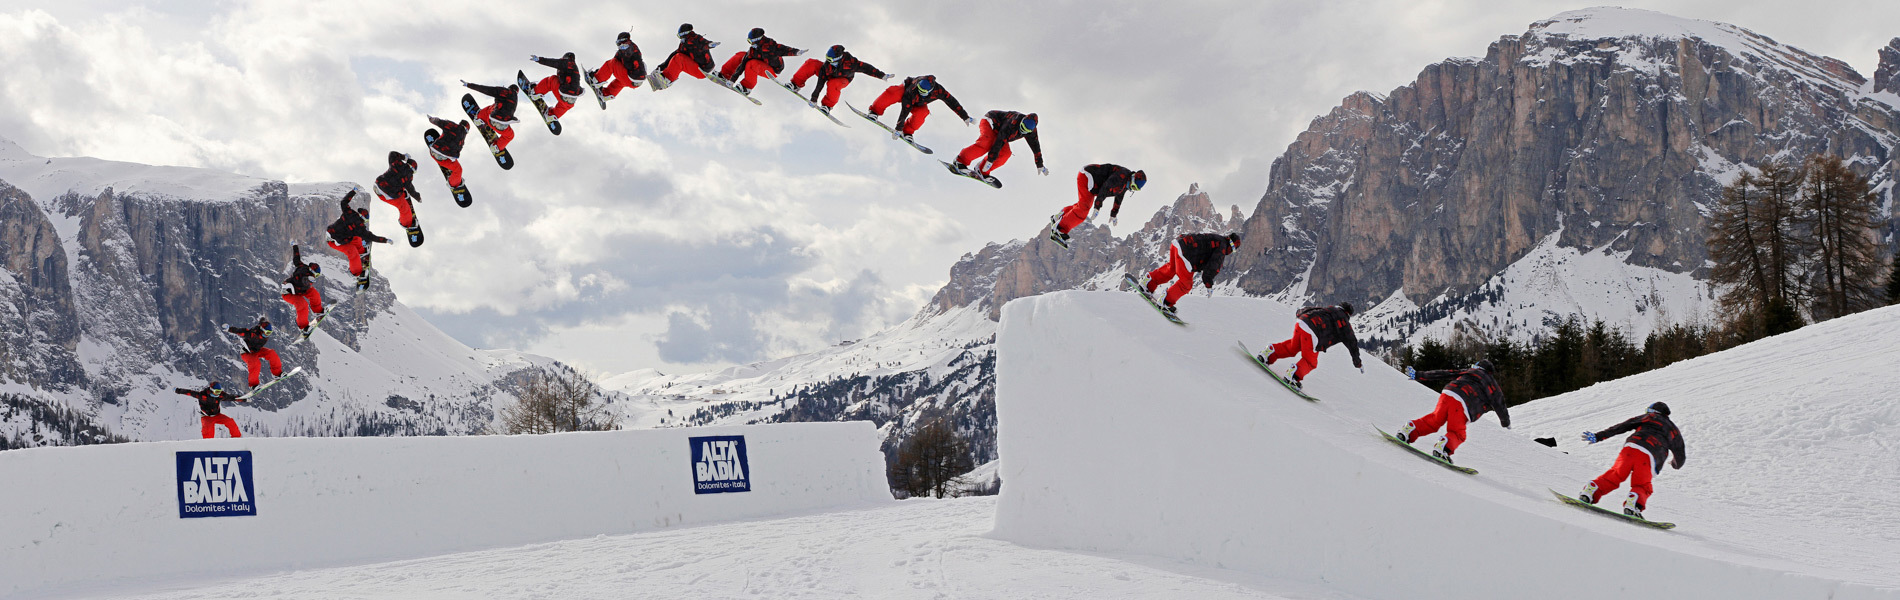 10 years of Snowpark Alta Badia – A throwback to the Shred Chronicles